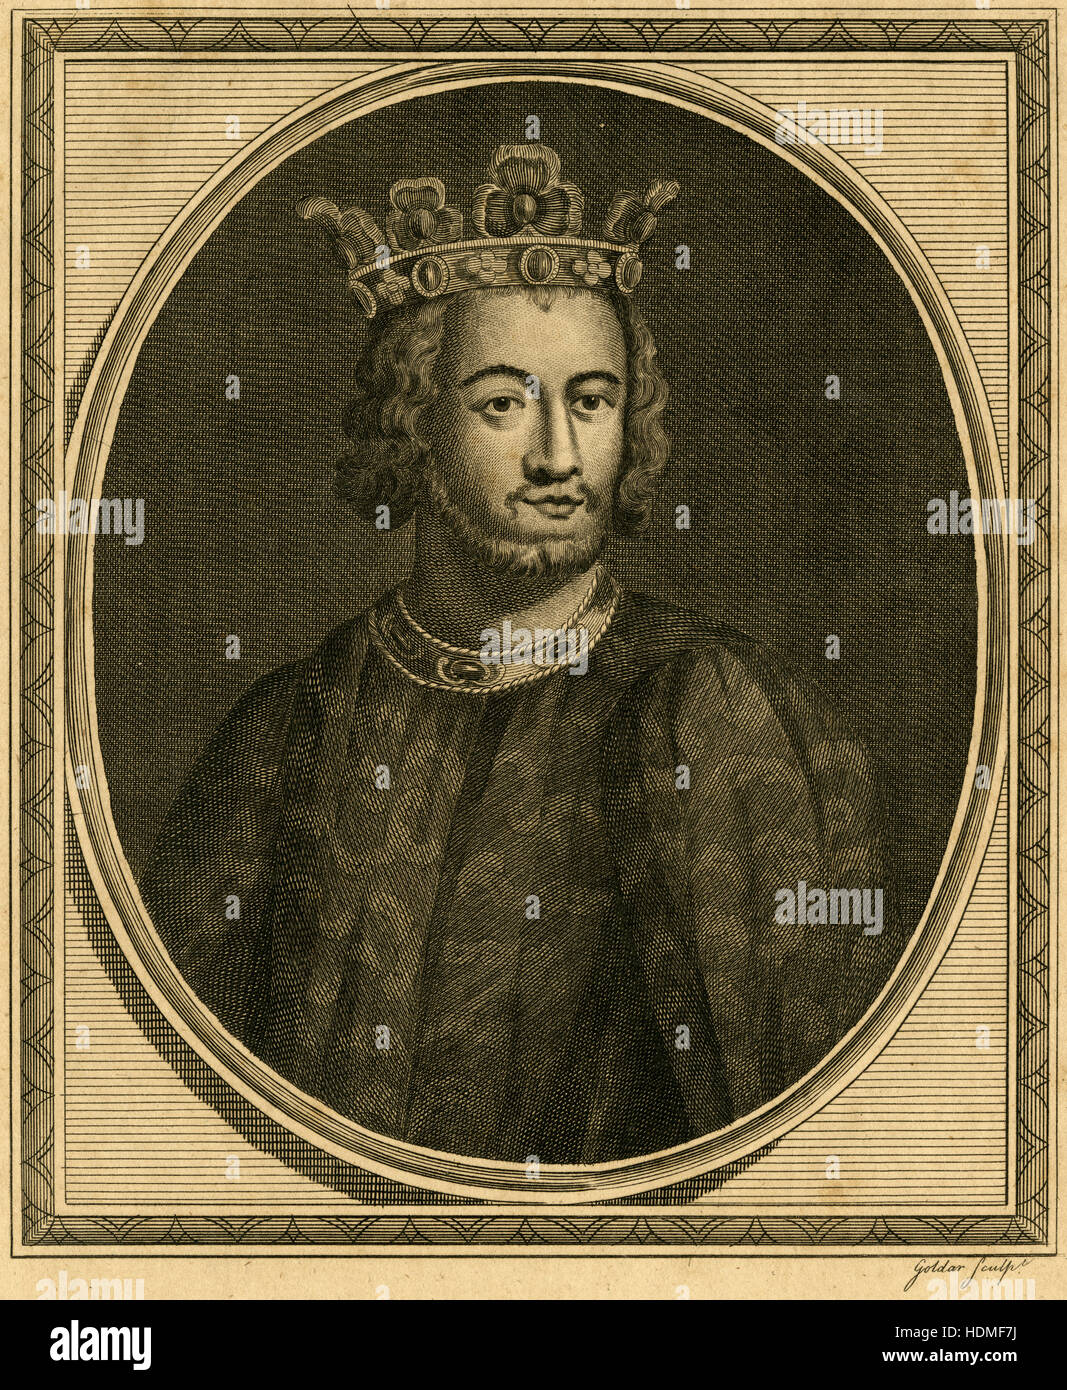 Antique 1787 engraving, depicting John, King of England. John (1166-1216), also known as John Lackland, was King - Stock Image